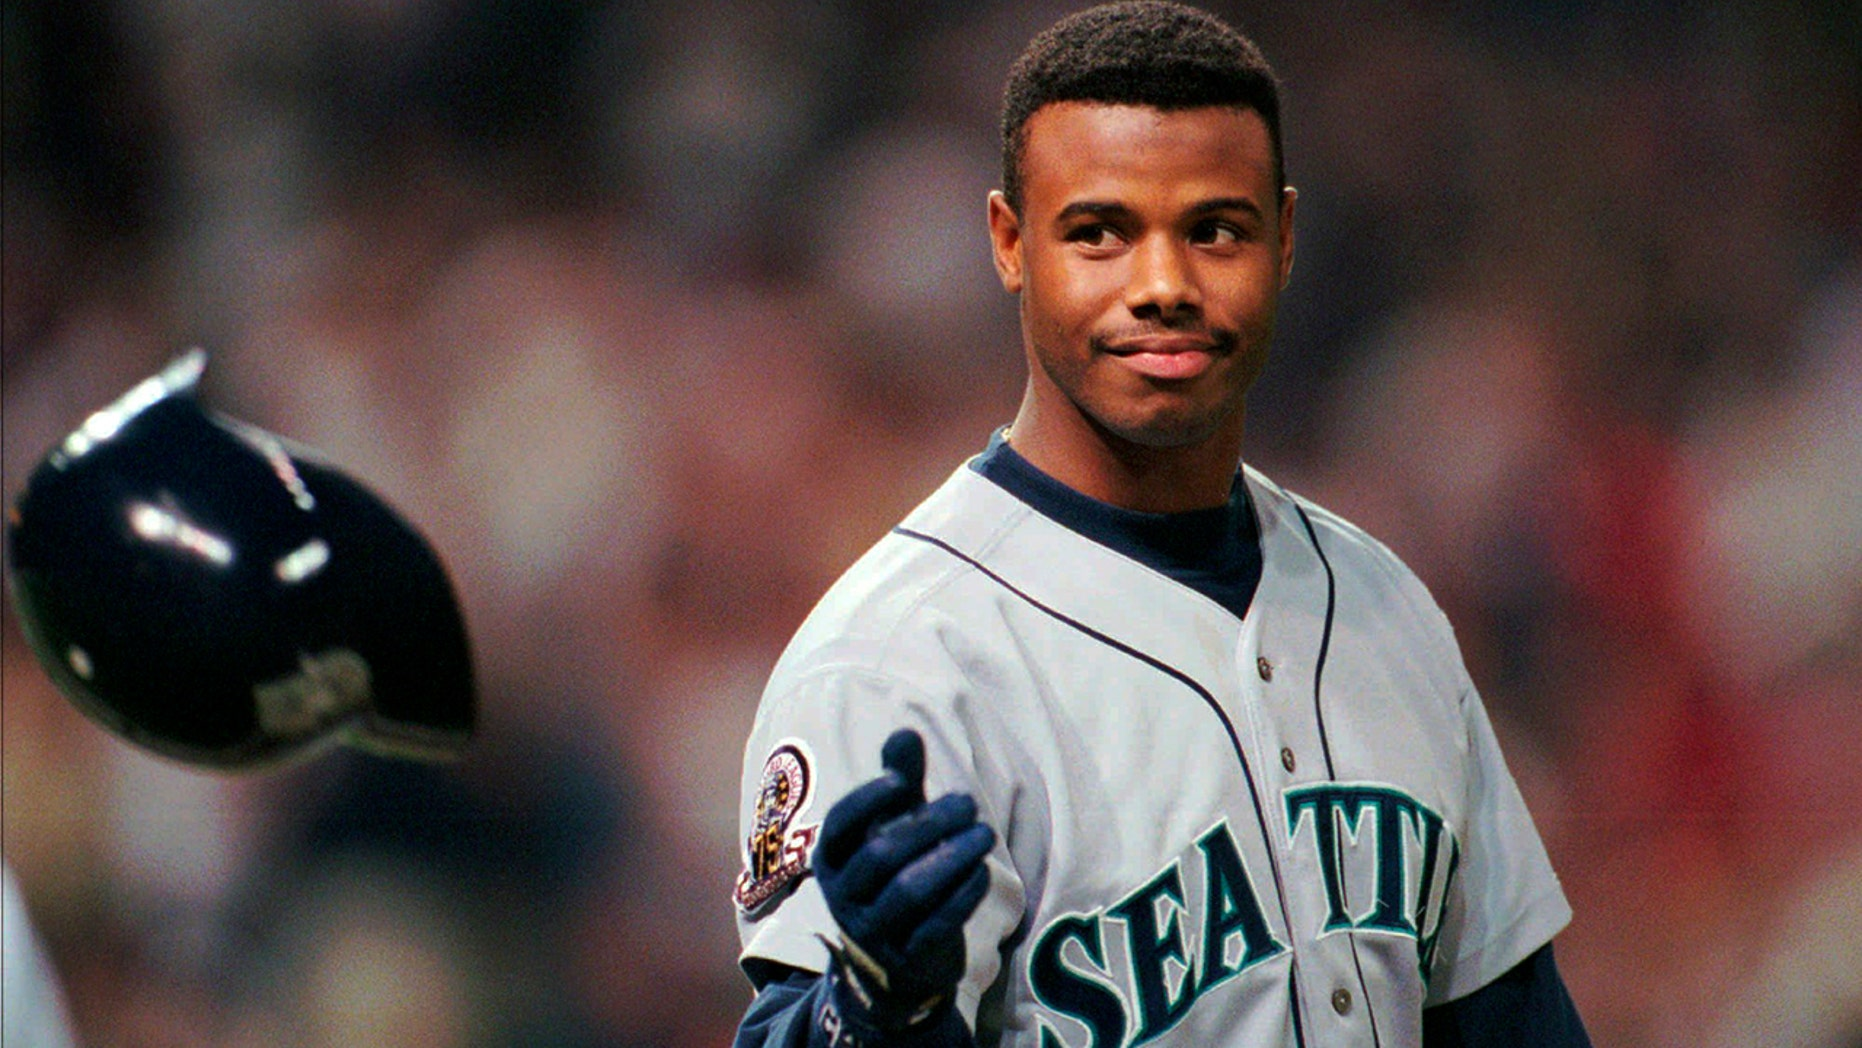 FILE - In this Oct. 13, 1995, file photo, Seattle Mariners Ken Griffey Jr. tosses his batting helmet after grounding out in the eighth inning against the Cleveland Indians in an ALCS game in Cleveland. The Seattle Mariners are the only baseball franchise never to advance to the Fall Classic. Baseball has never been played in Seattle beyond Oct. 22. The Mariners have three times been to the American League Championship Series, and all three times were sent home before there could ever be a Game 7. (AP Photo/Mark Duncan, File)